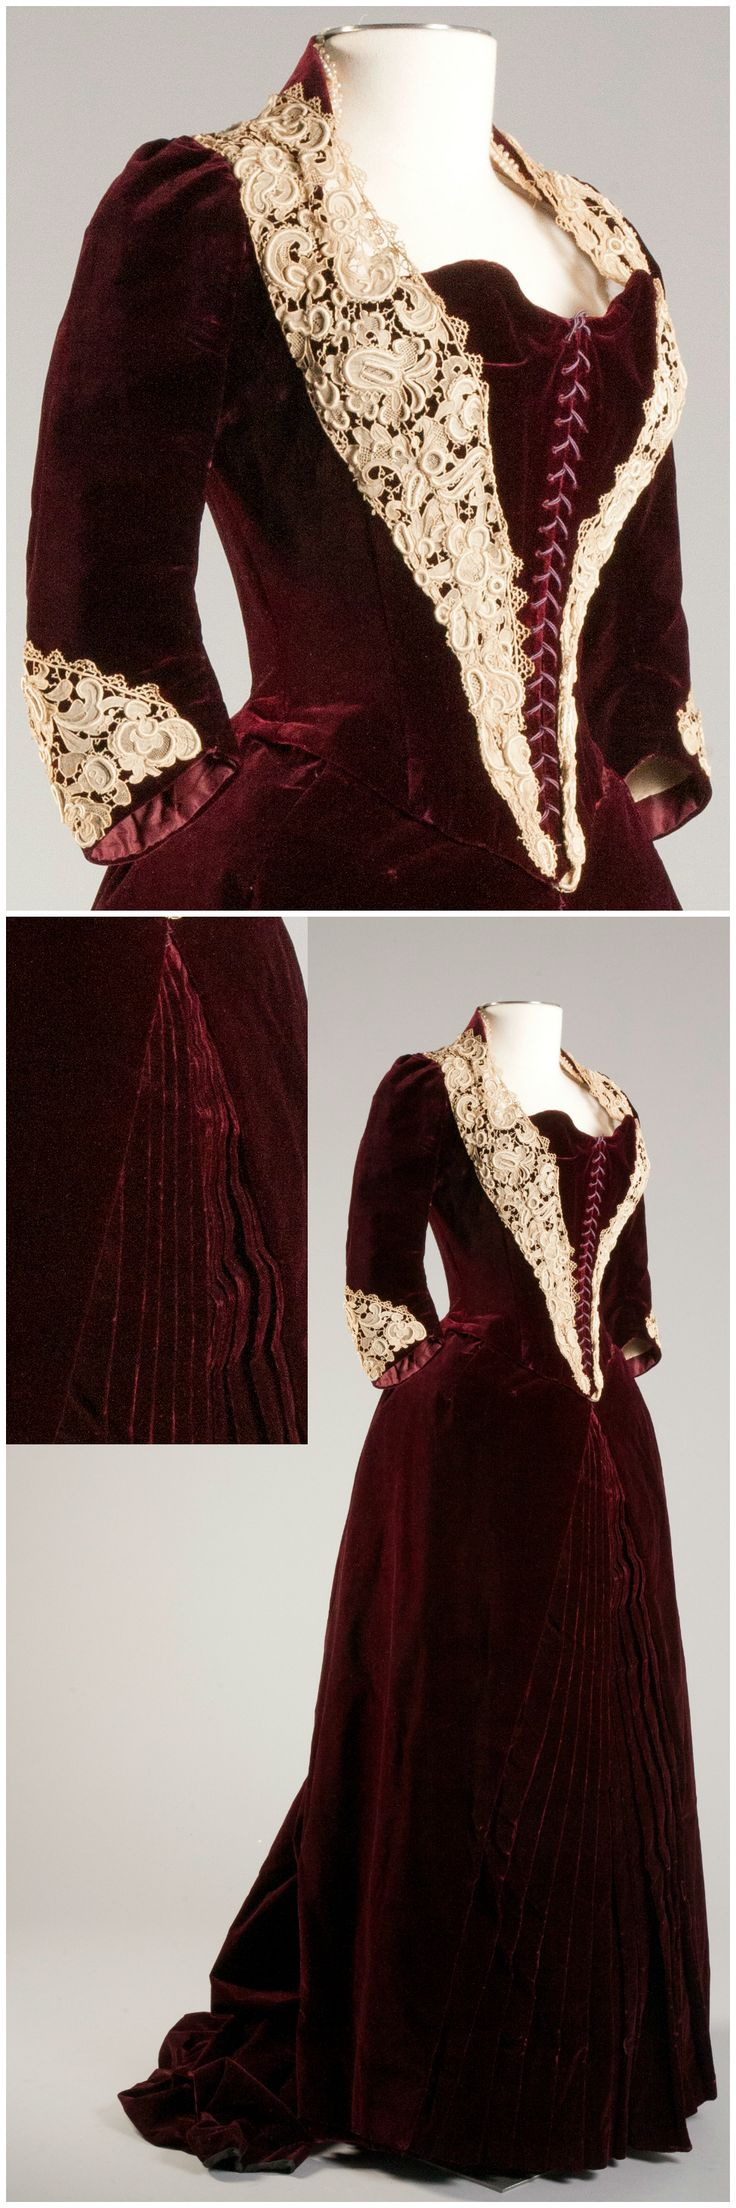 French dinner dress, 1880s, Robert and Penny Fox Historic Costume Collection at Drexel University. Photo by Michael J. Shepherd, via Broad Street Review. CLICK THROUGH FOR LARGER IMAGES.